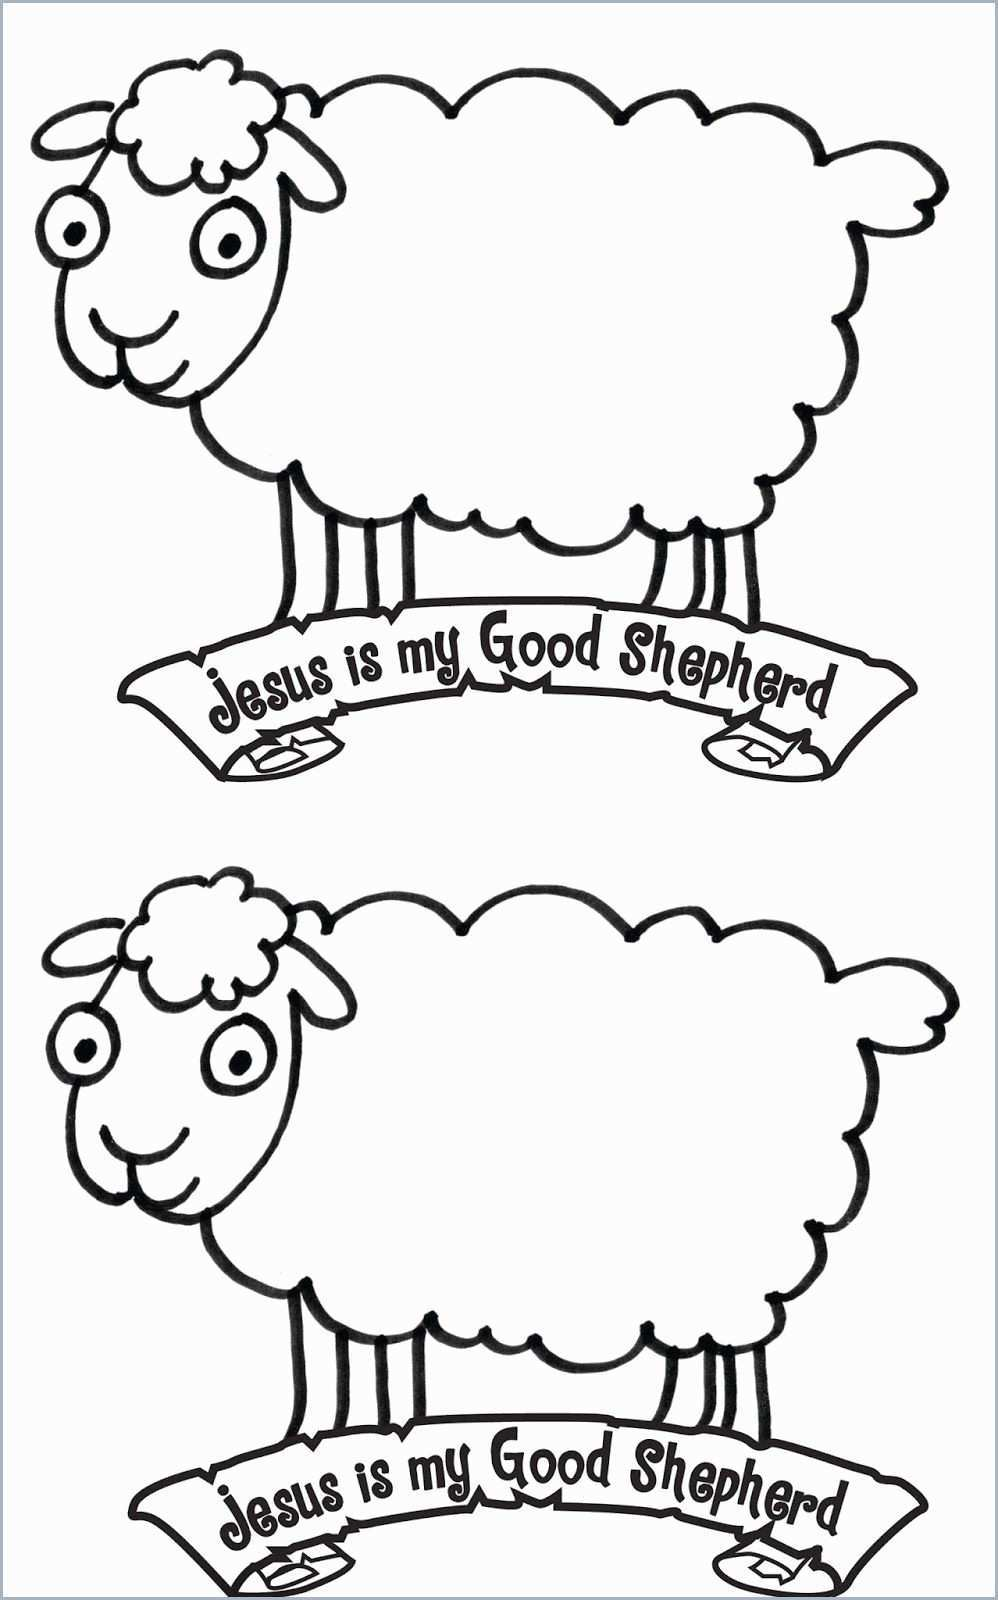 Good Shepherd Coloring Pages - Religious Doodles | 1600x998